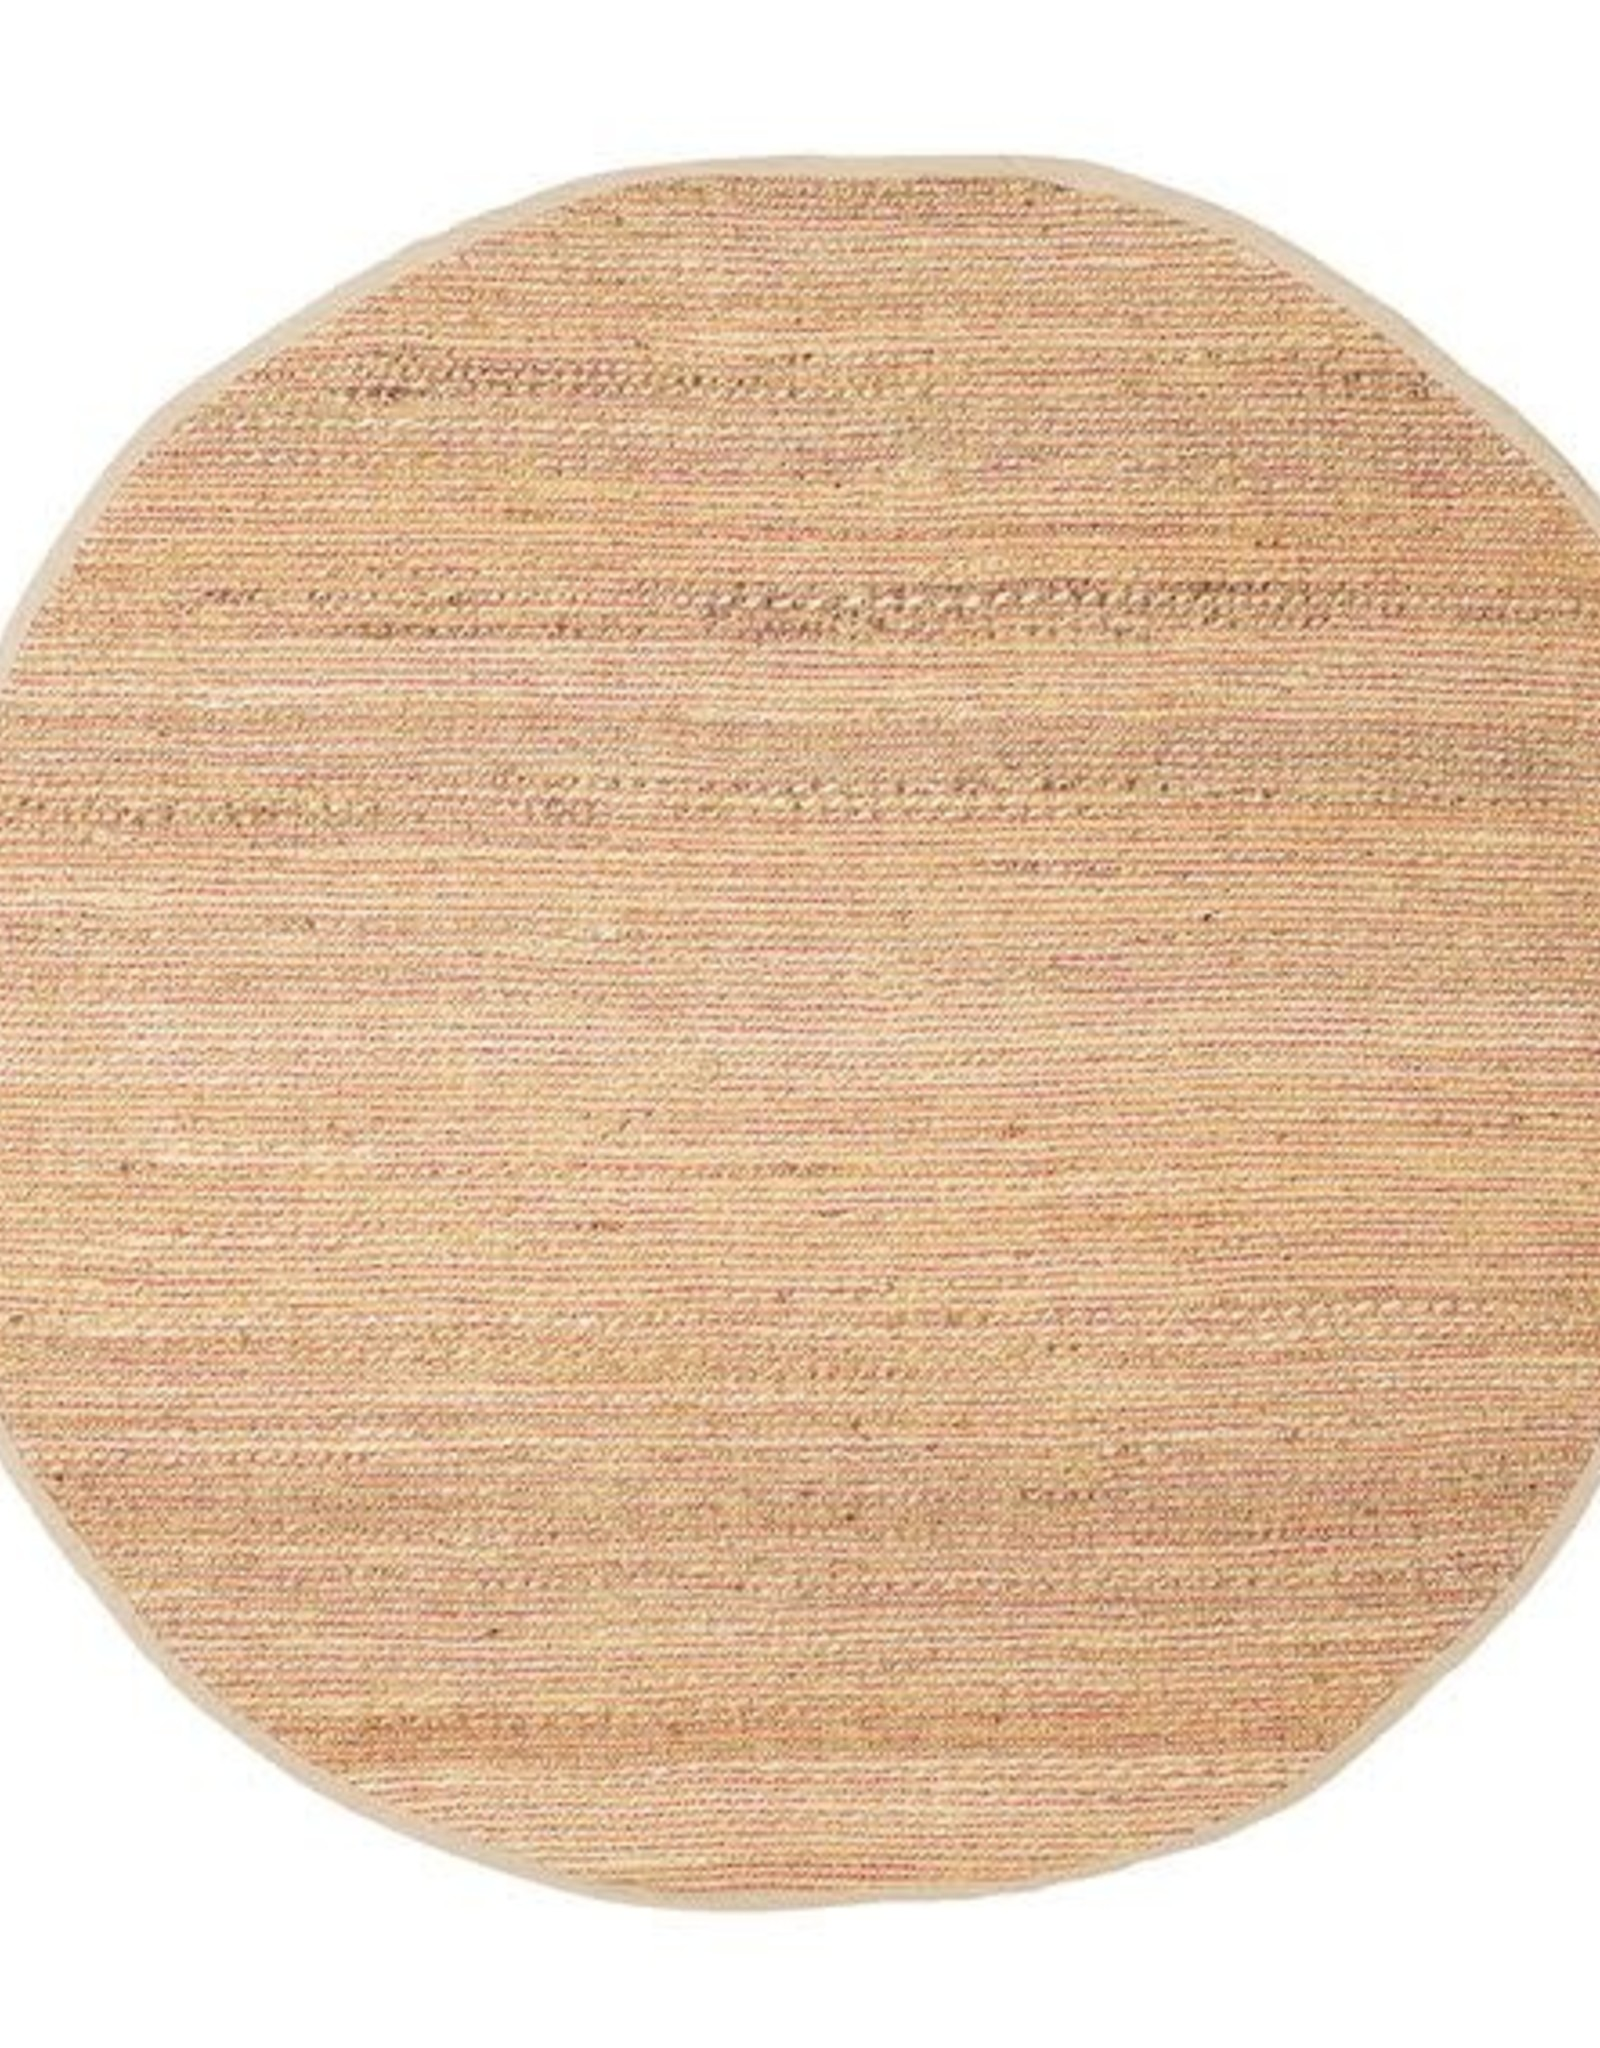 RUG WOVEN ROUND JUTE AND CHENILLE PINK 4FT